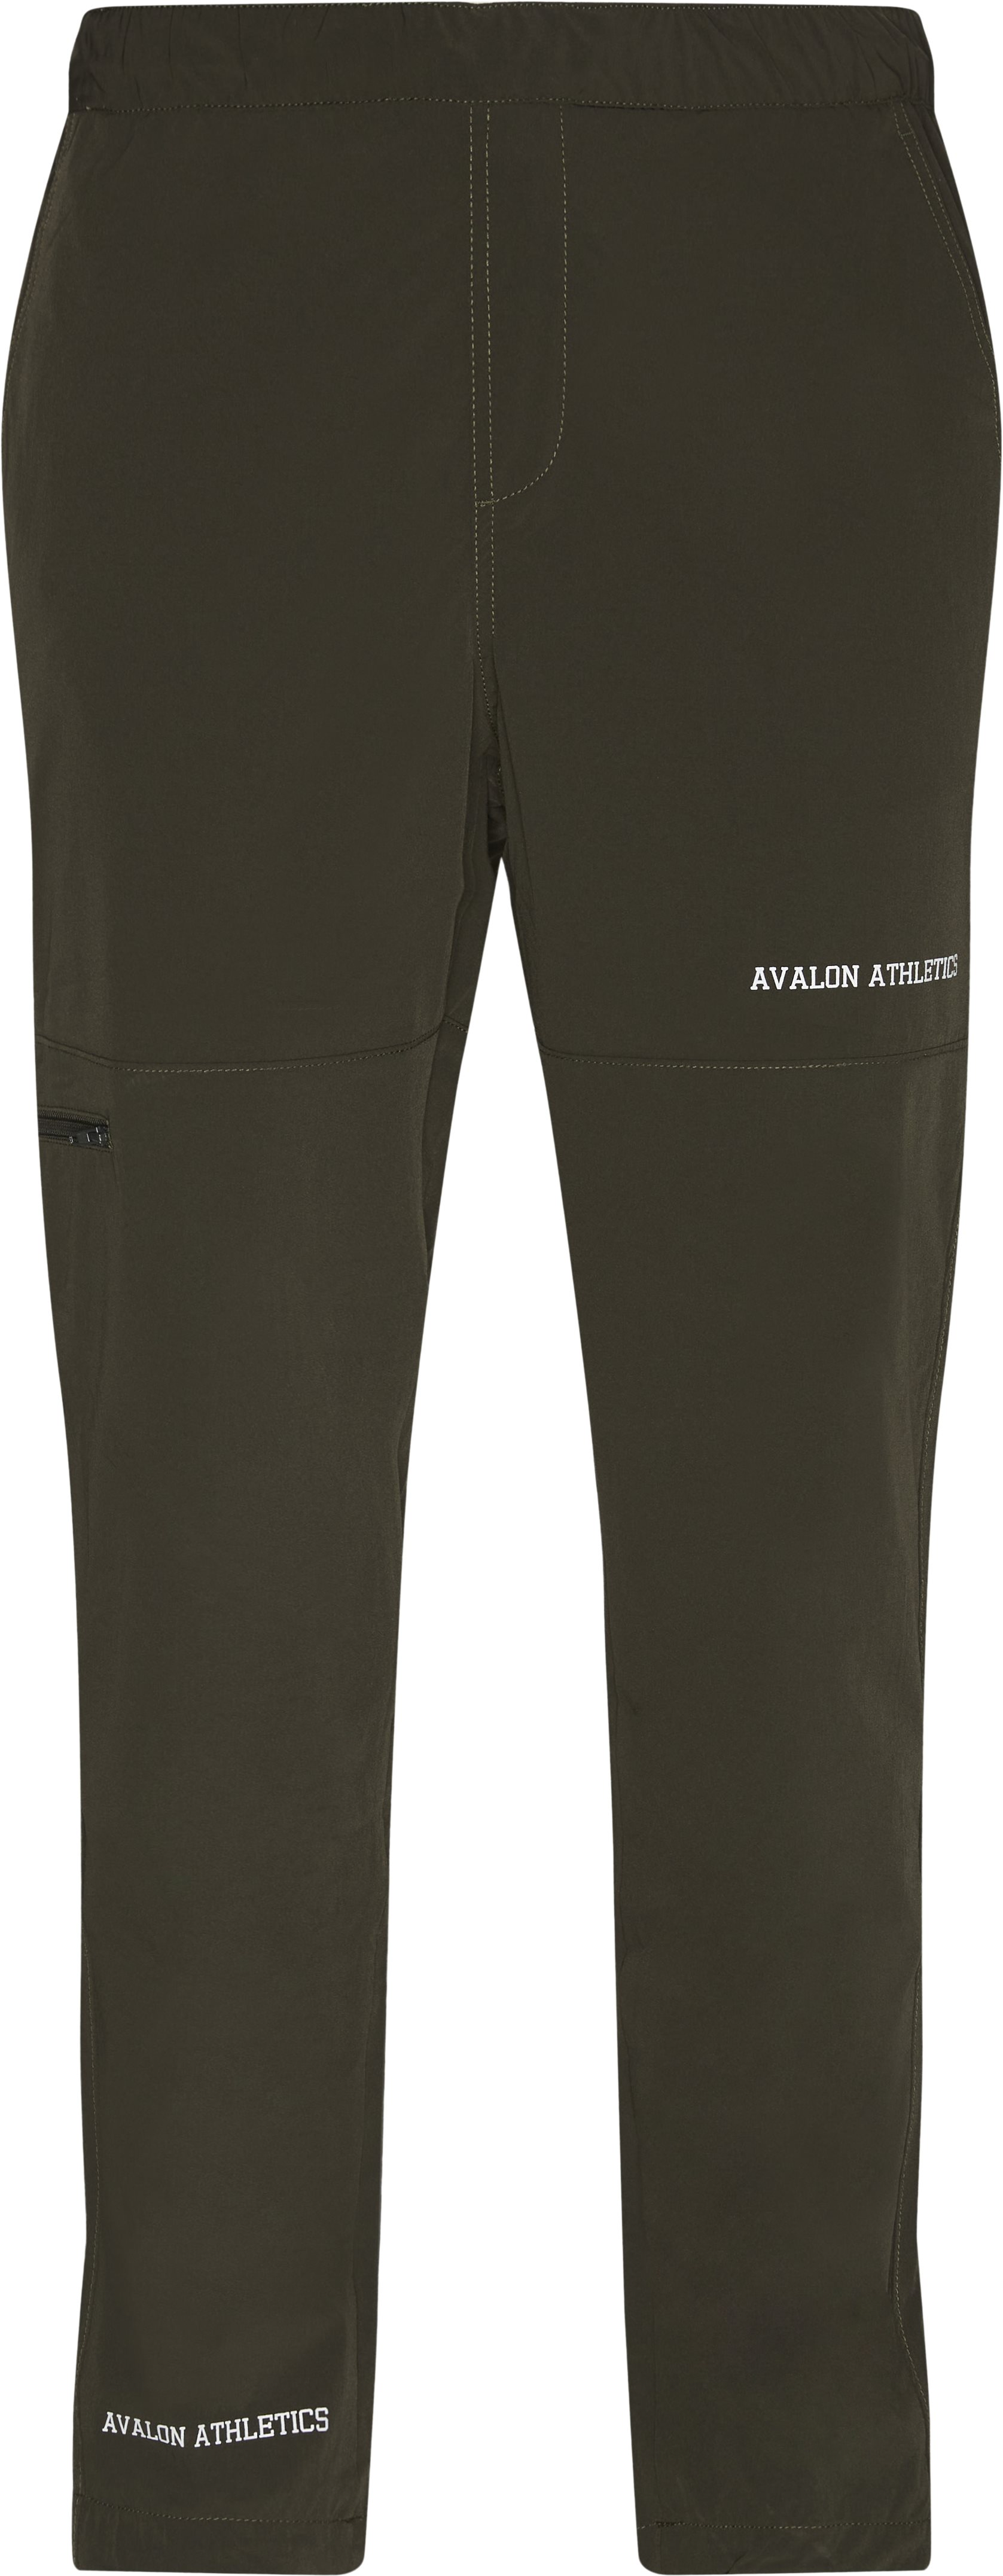 Bolton Track Pants - Trousers - Regular - Army